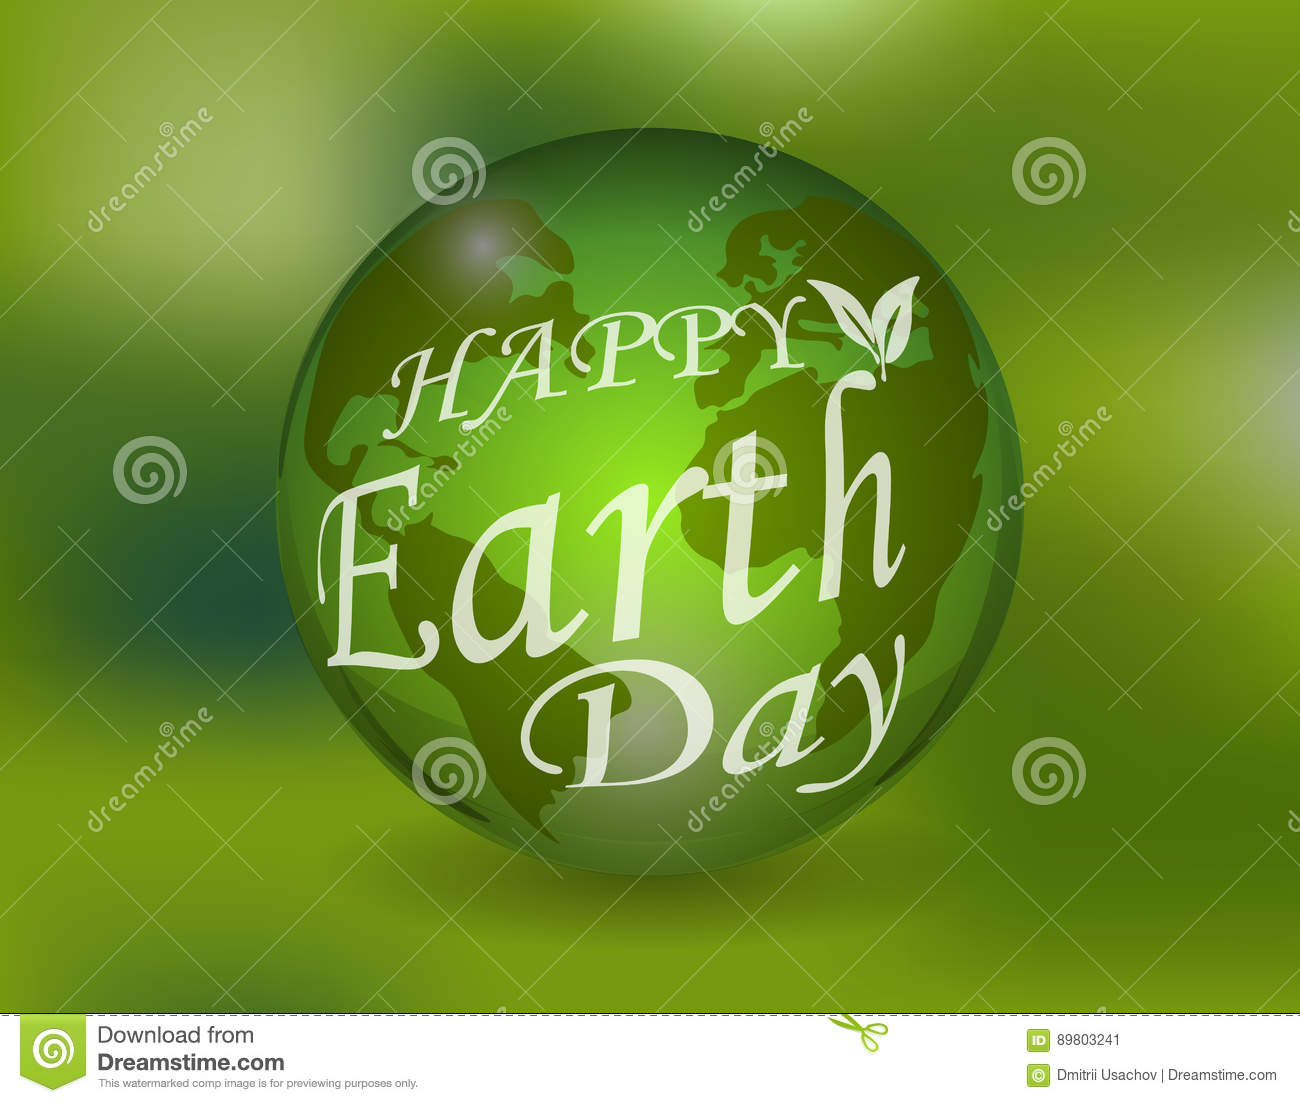 We Normally Sell Two A Day Today We Are Selling Up To 15: Inscription Wish Happy Earth Day Globe Green Eco